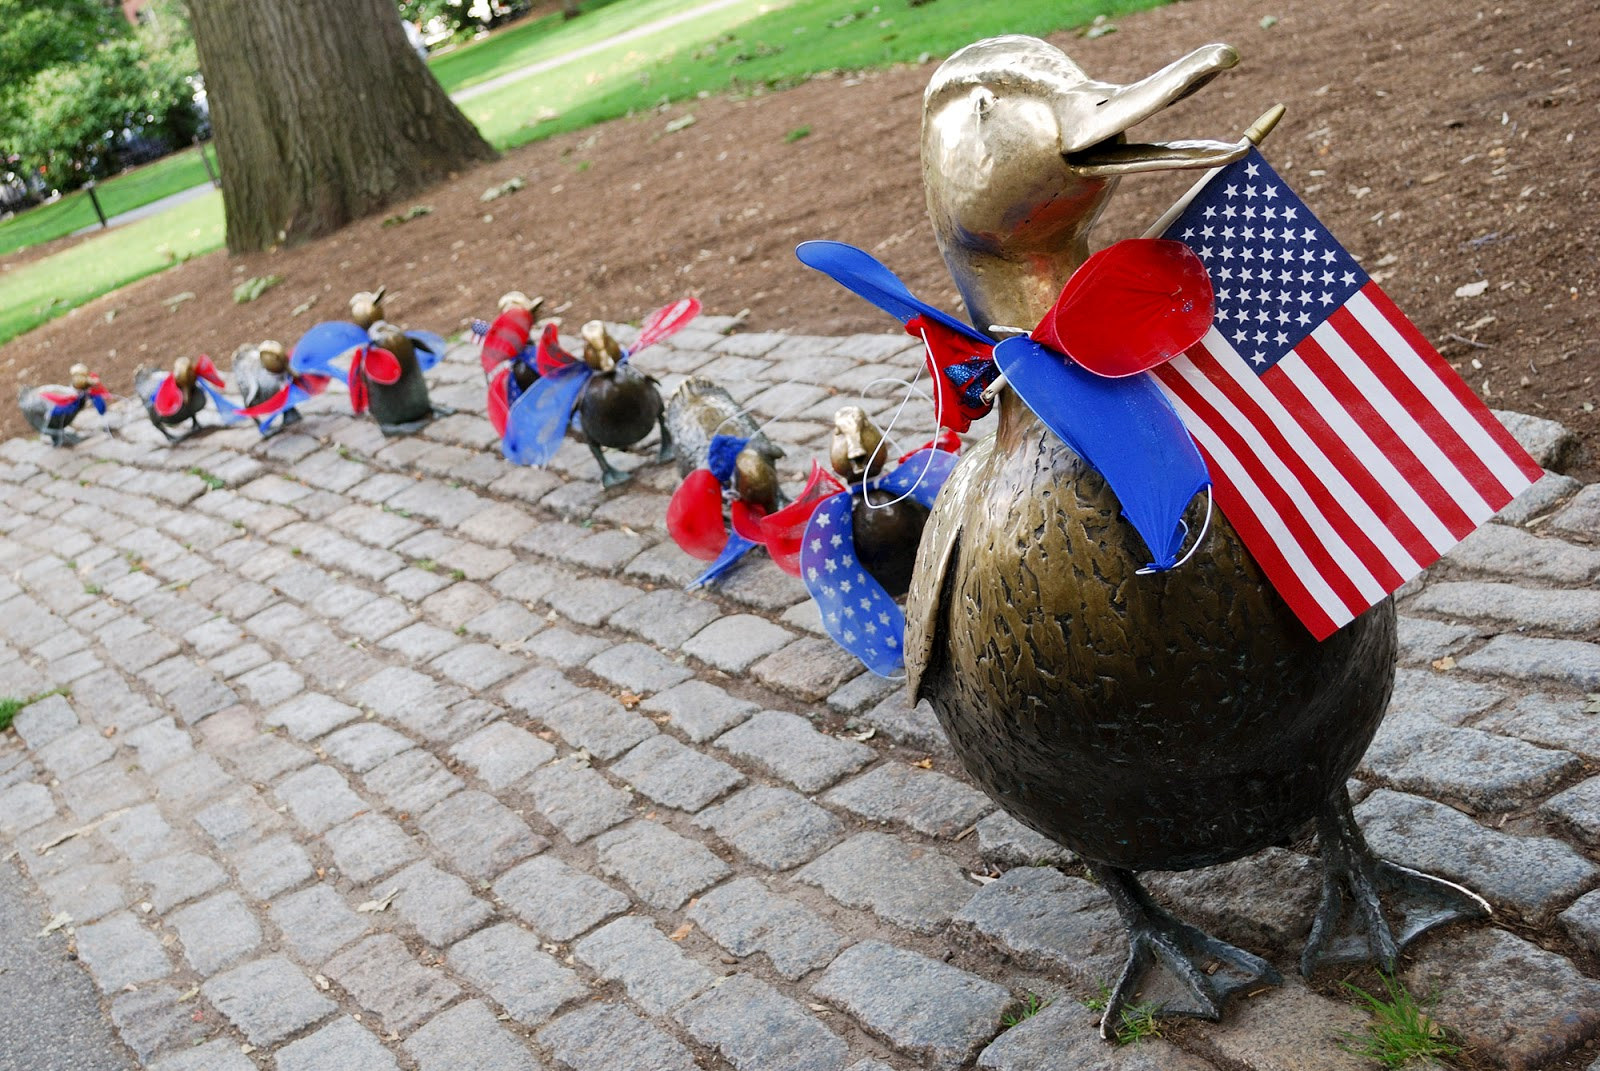 usa trip vacation east coast itinerary boston public garden duckling duck stature destination spot place guide planner